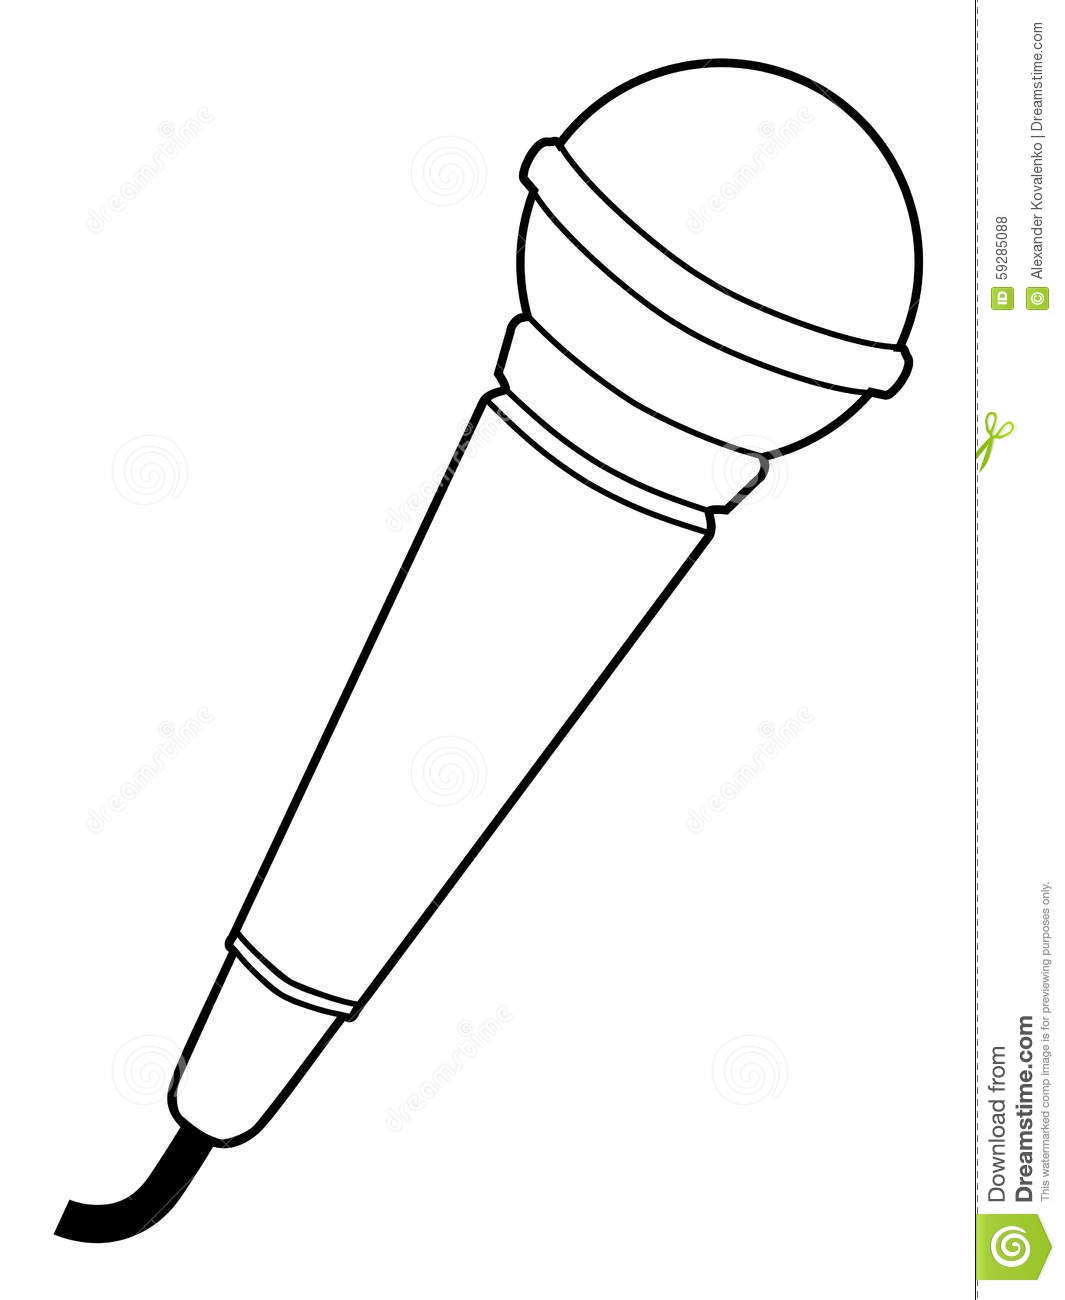 Microphone, Audio Equipment Stock Illustration